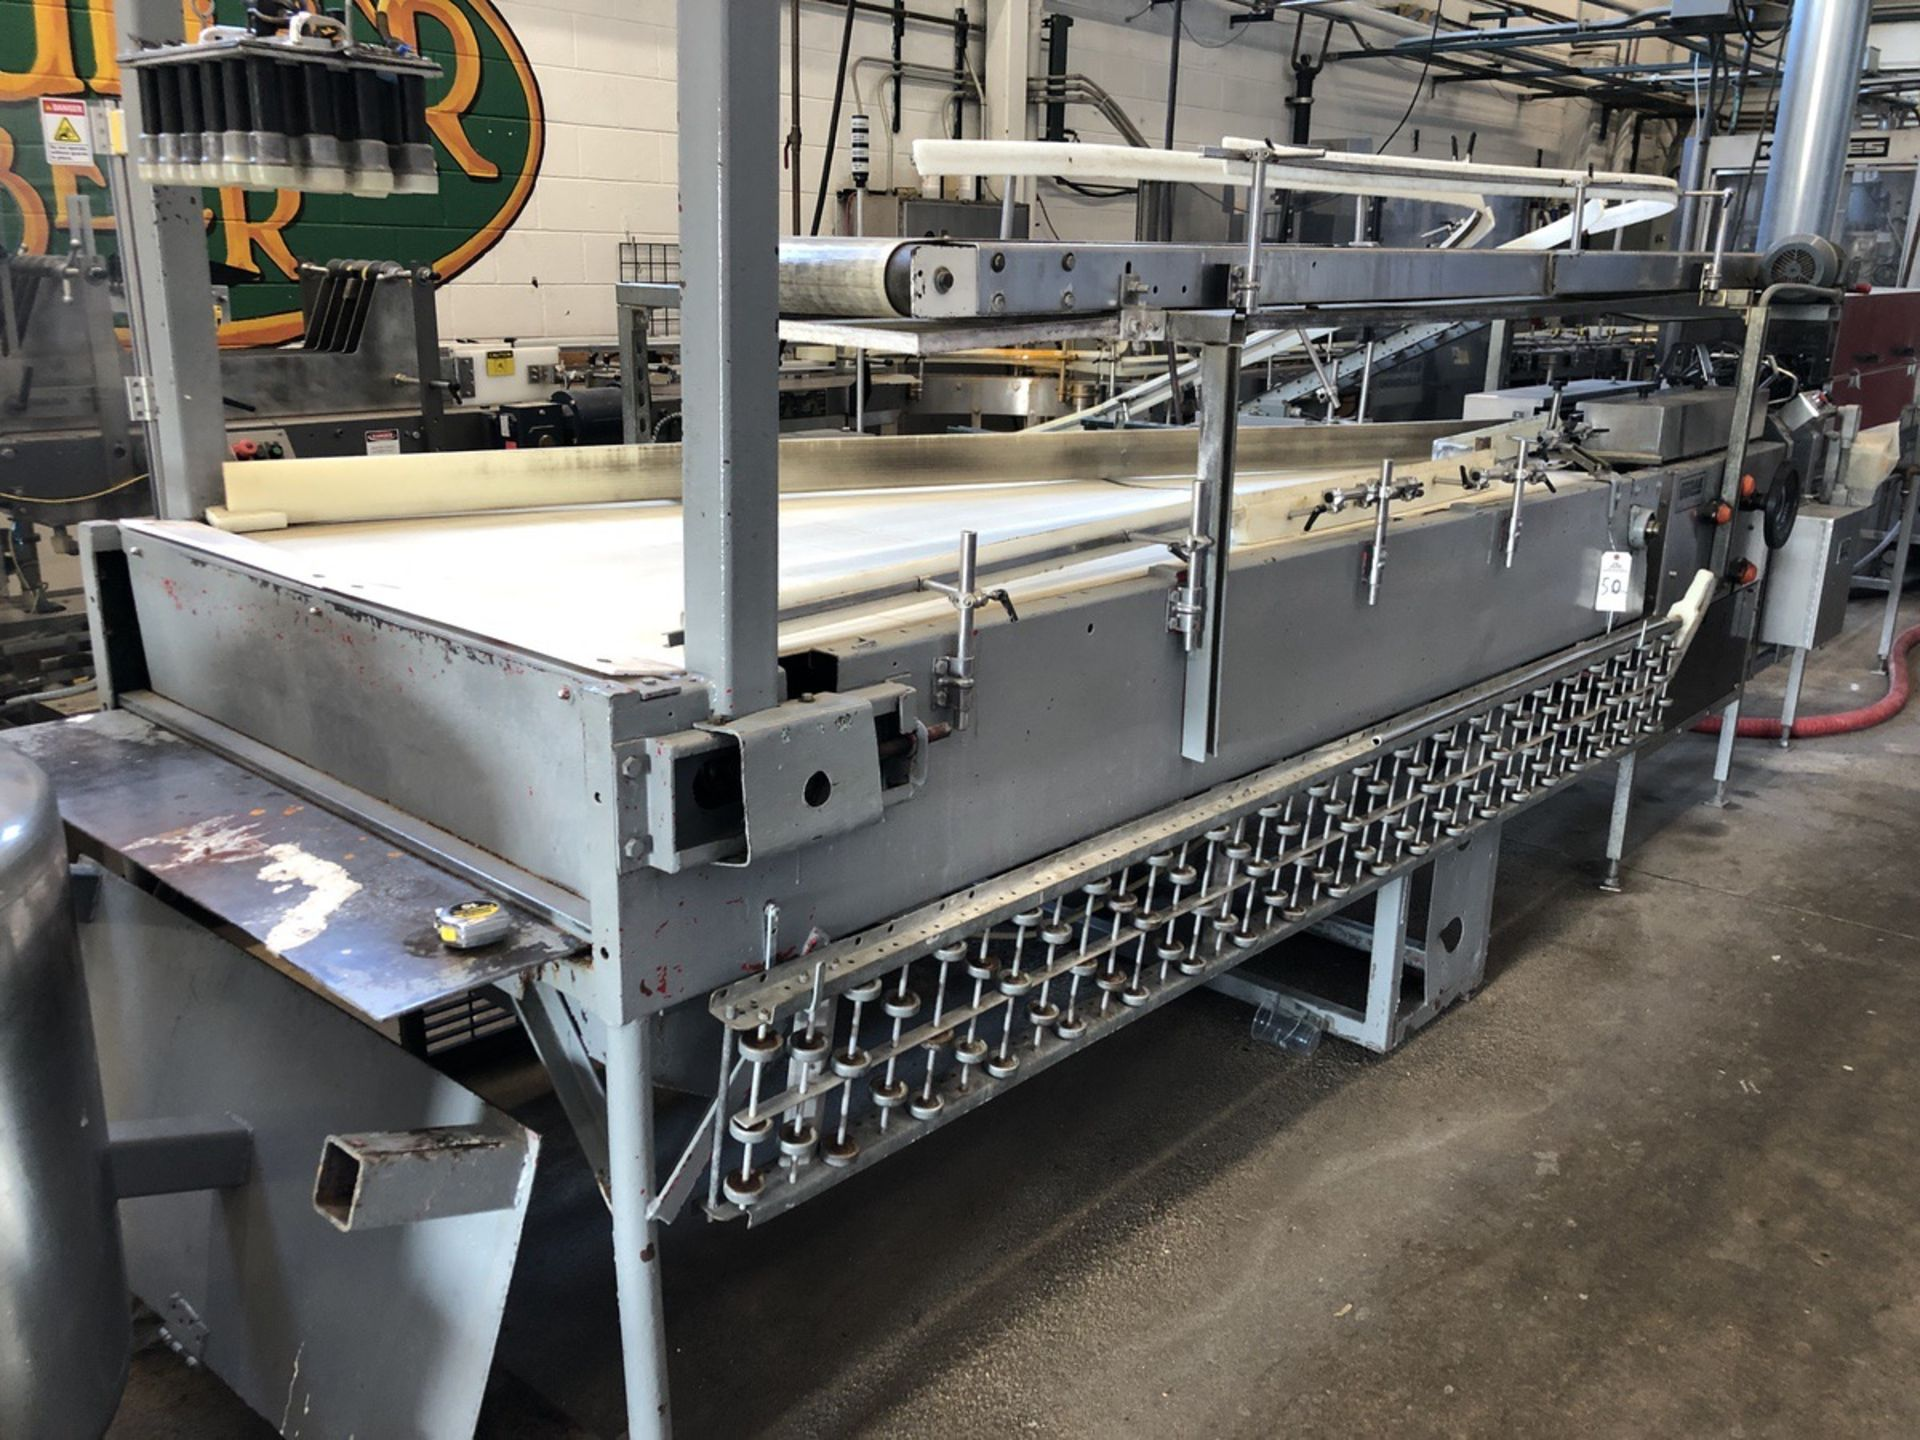 Lot 50 - Accumulation Table, 48in W Belt x 10ft Long, Box Conveyor 12in W x 12 | Sub to Bulk | Rig Fee: $500